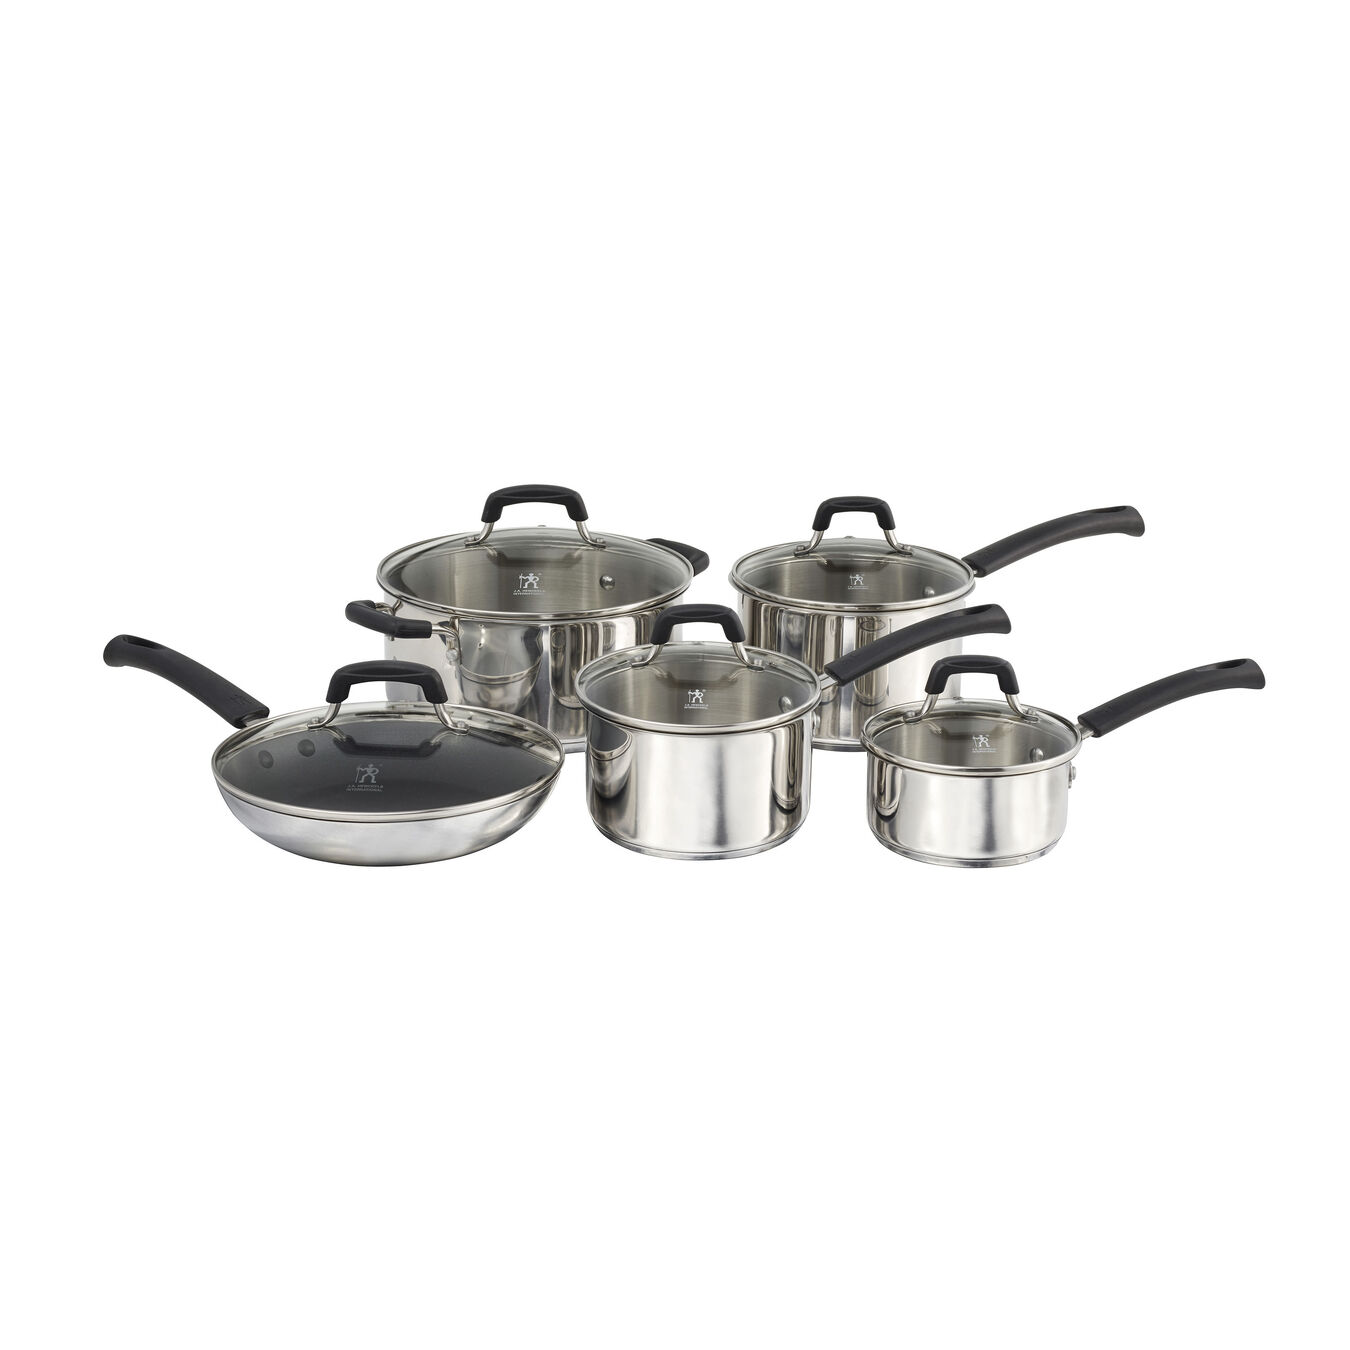 10 Piece Stainless steel Cookware set,,large 1